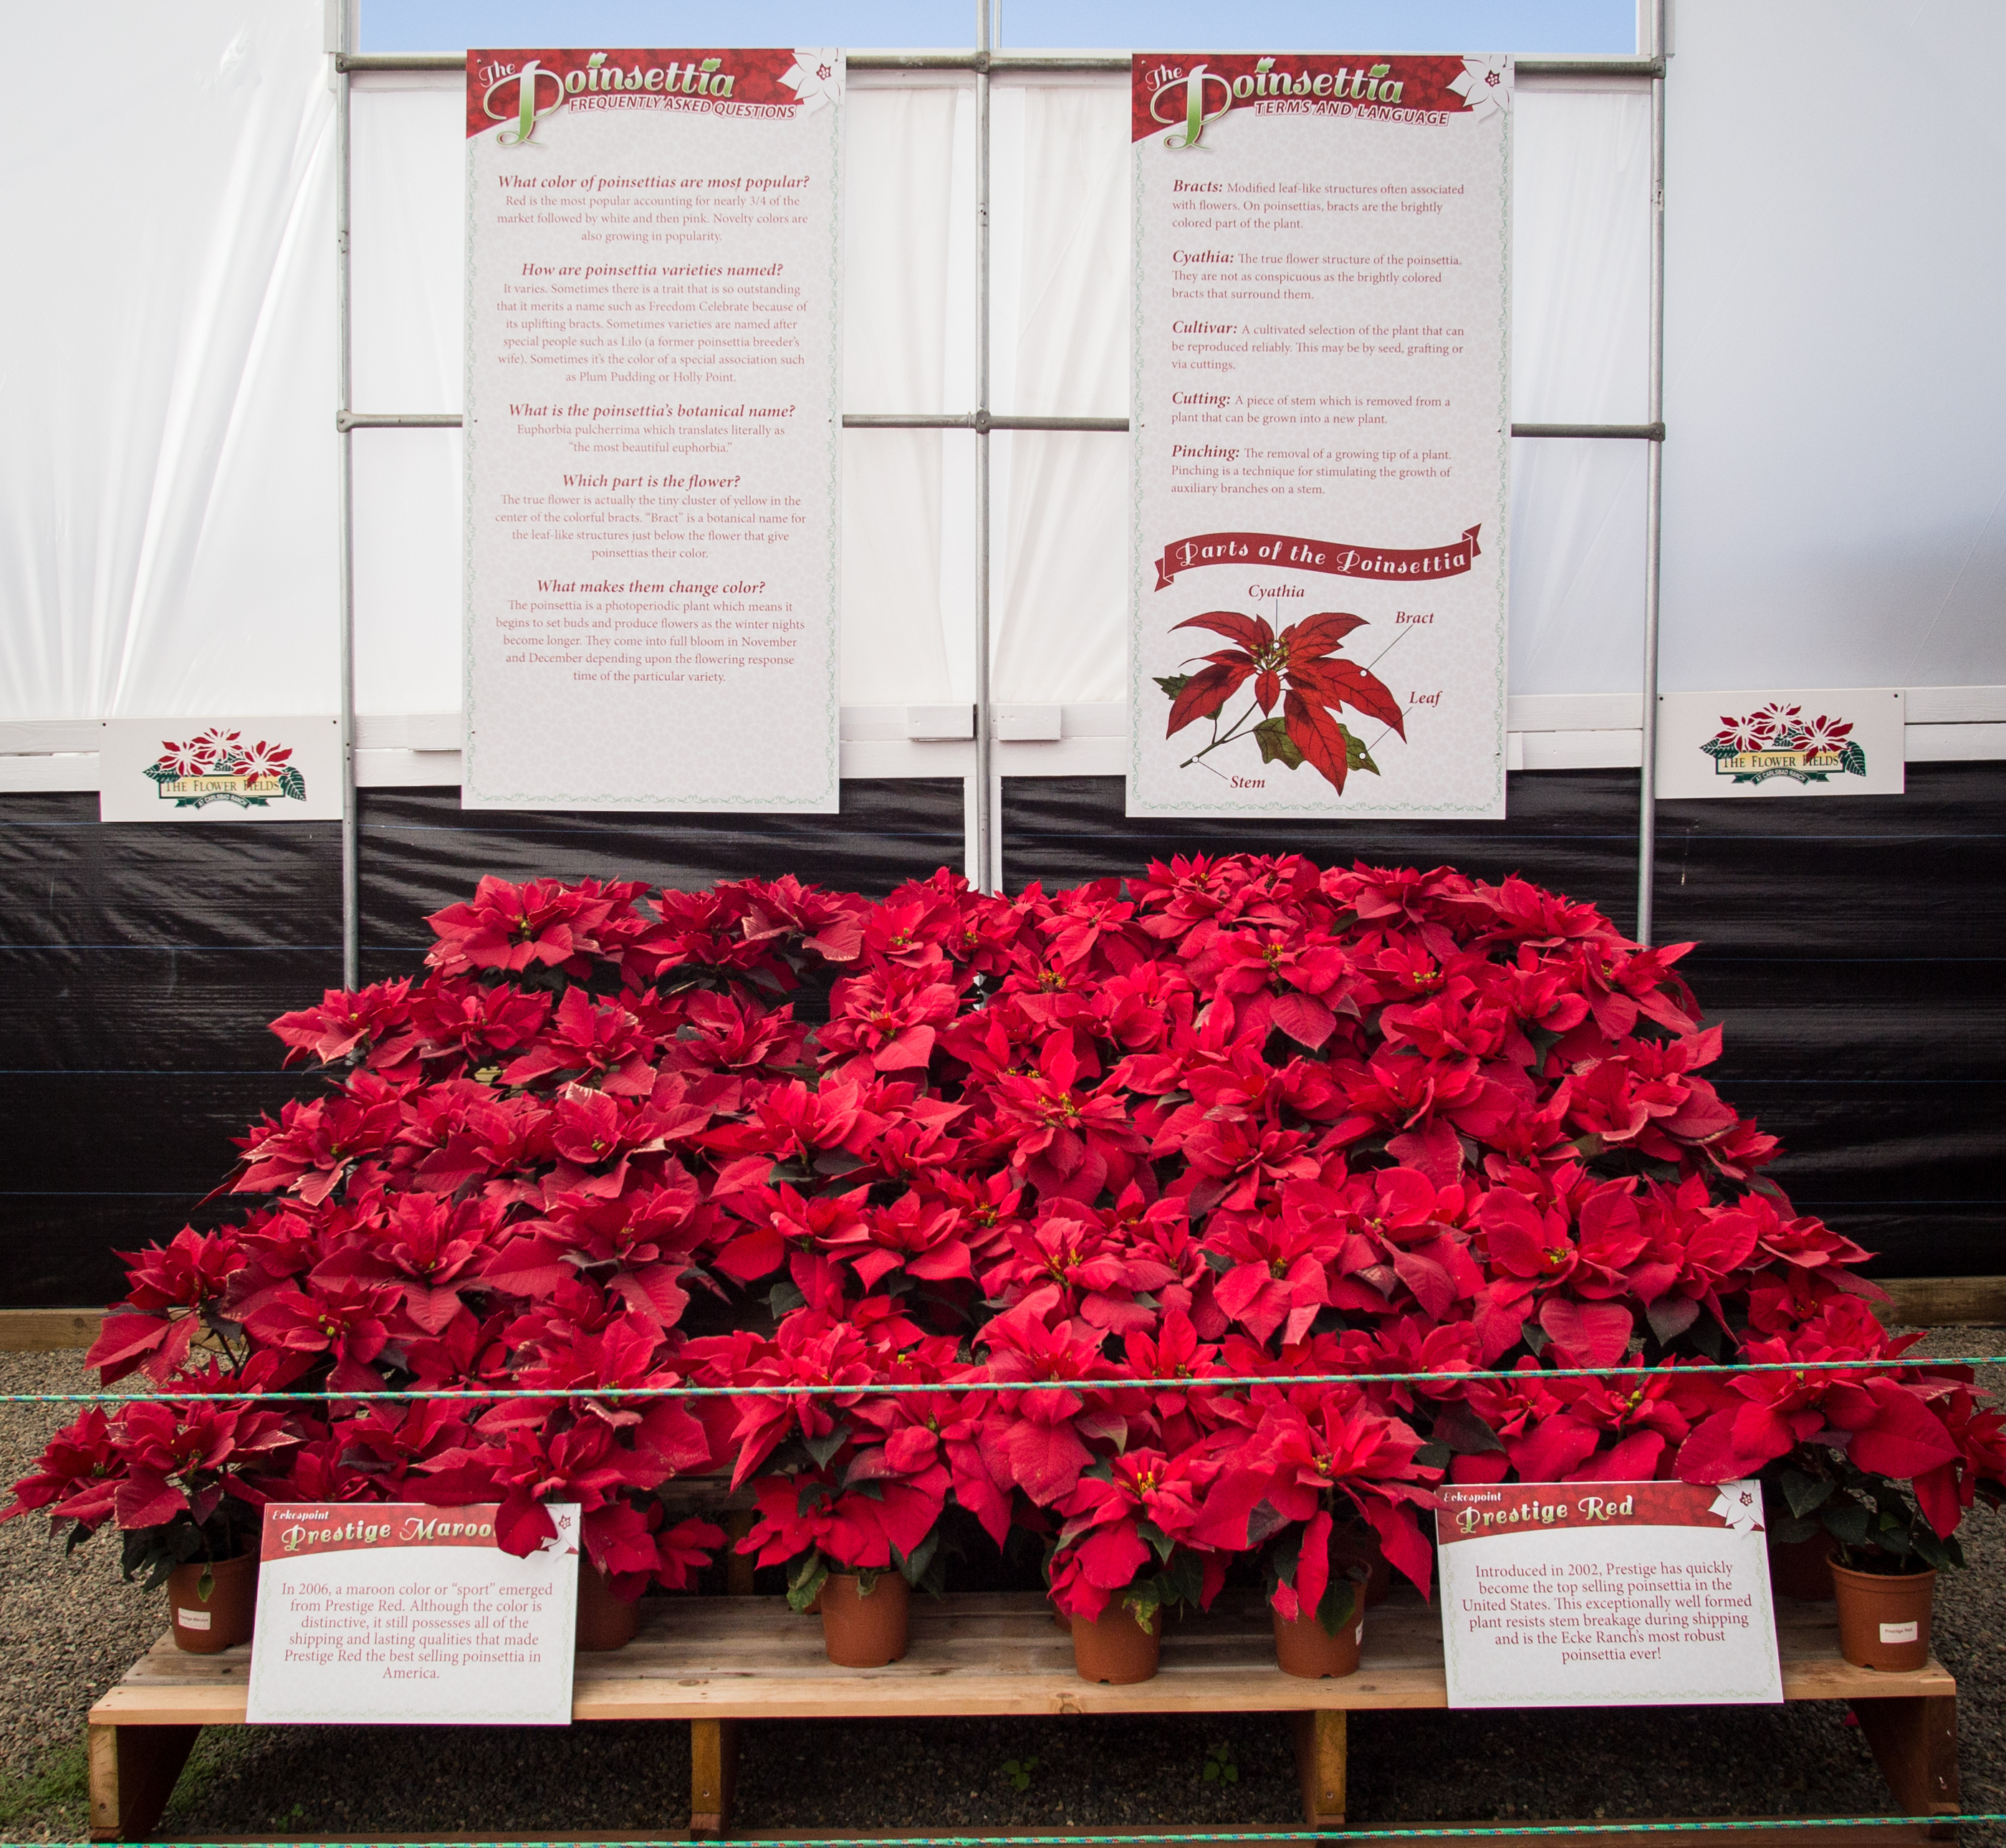 A display of potted poinsettias with FAQs listed above them.